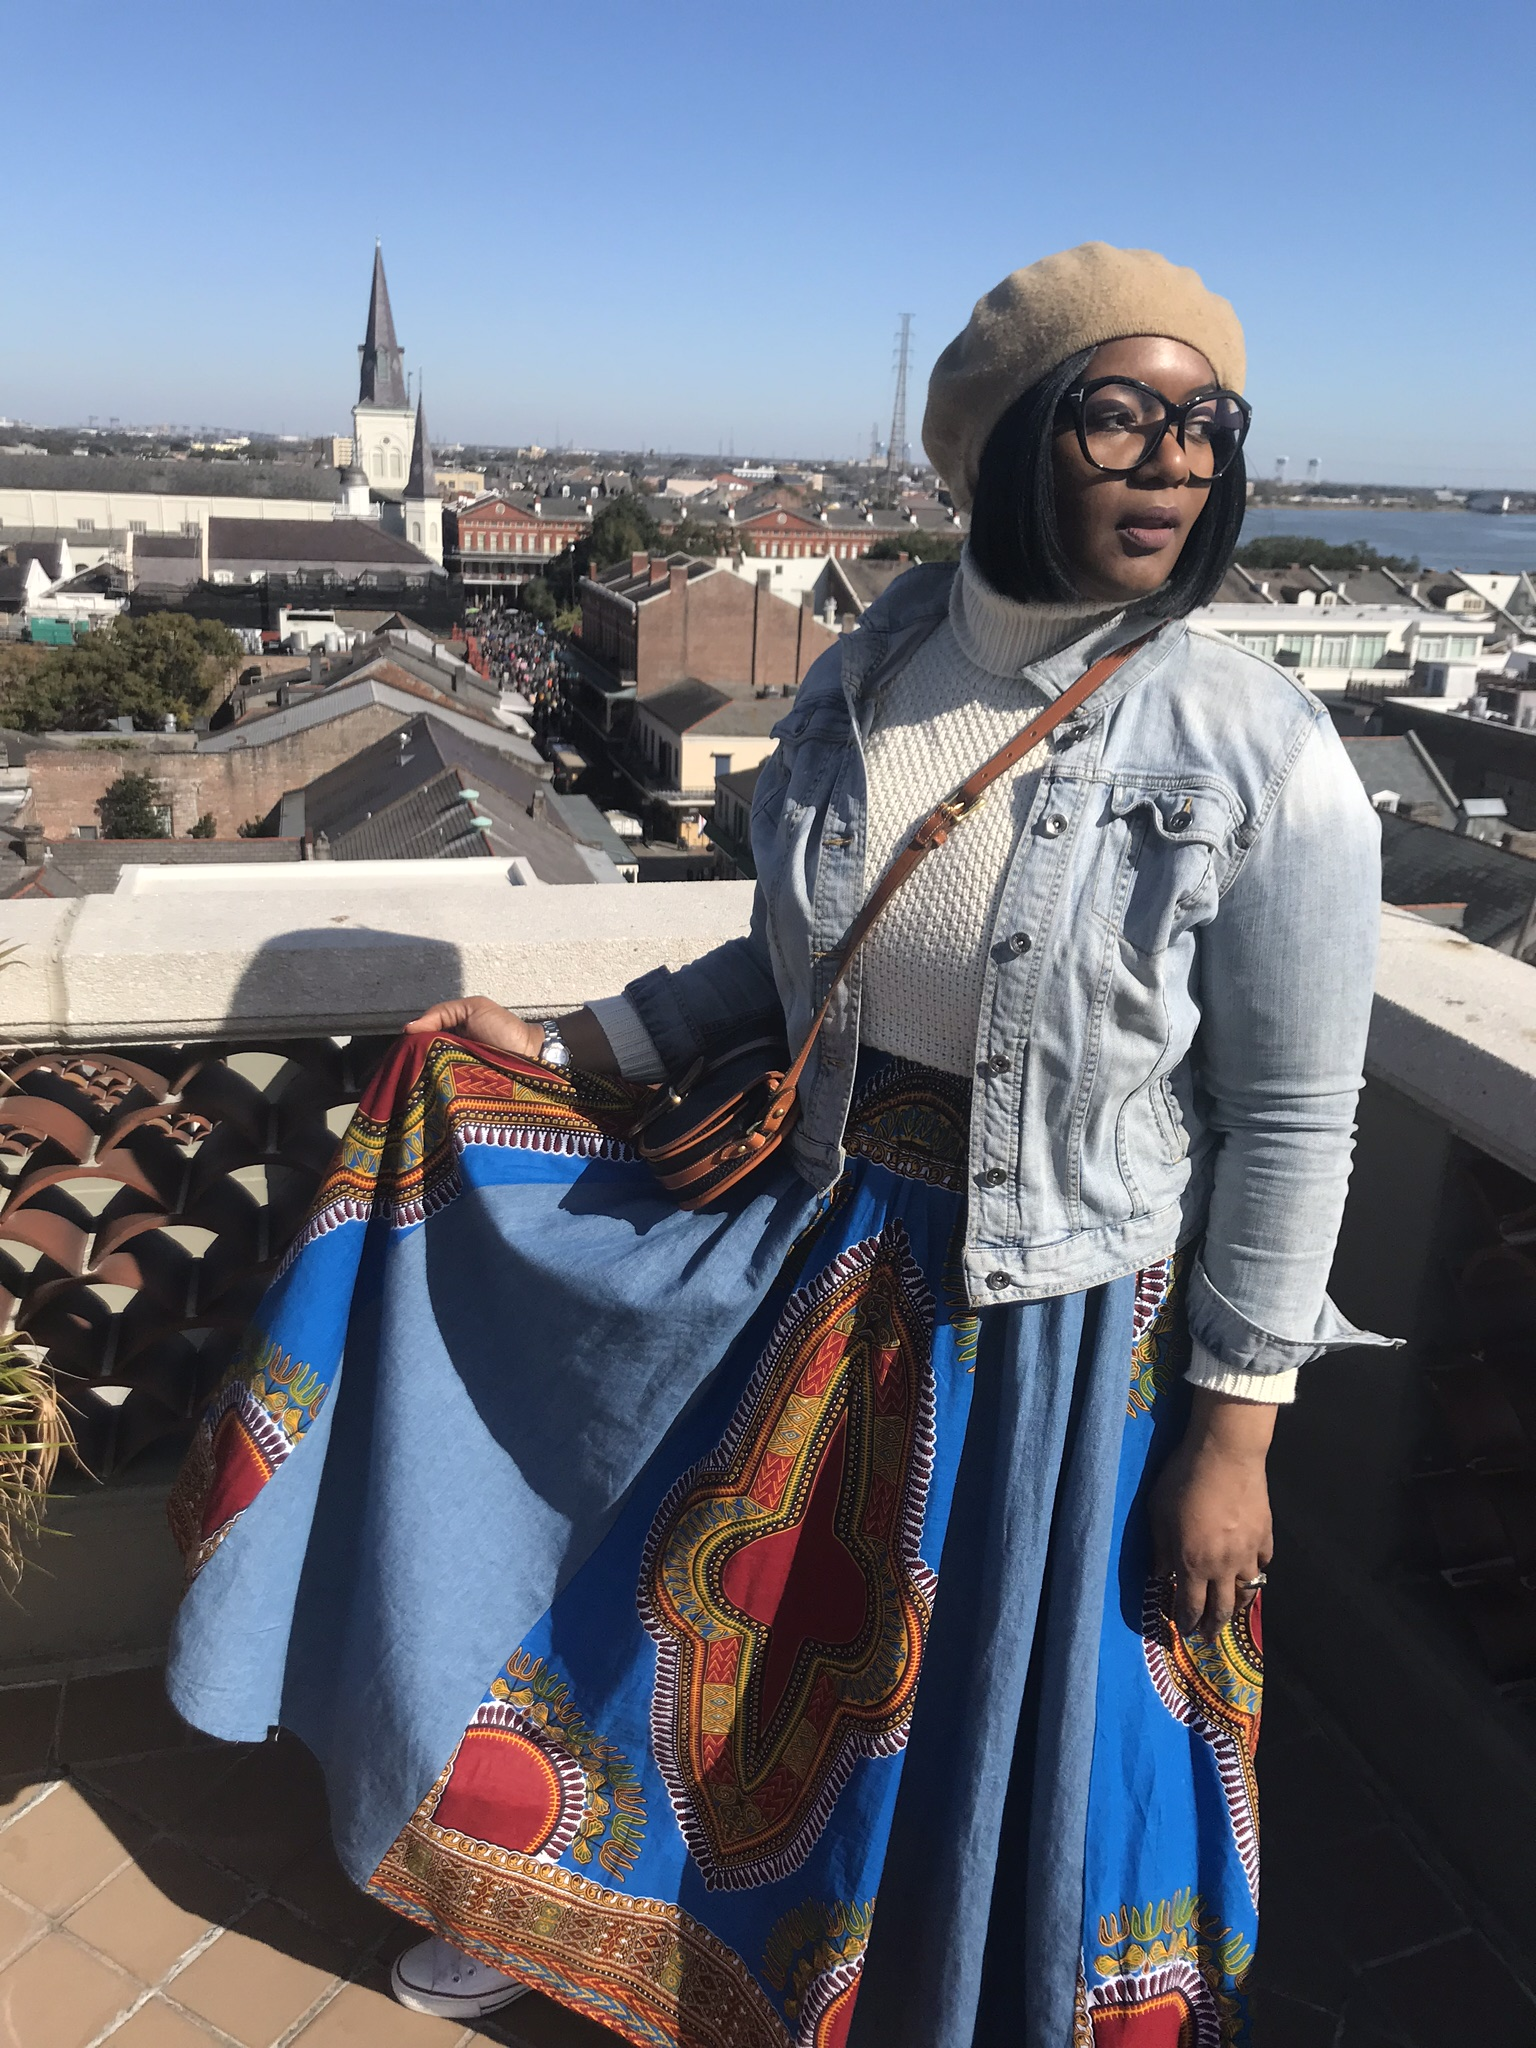 I love African print maxi skirts!! - Wear it year round- with a simple medium weight turtleneck and a jean jacket. It got mine from a vendor on a trip to Atlanta but I have others from digginherroots.com The length and weight is warm enough to keep the chill out -add leggings to bulk it up!